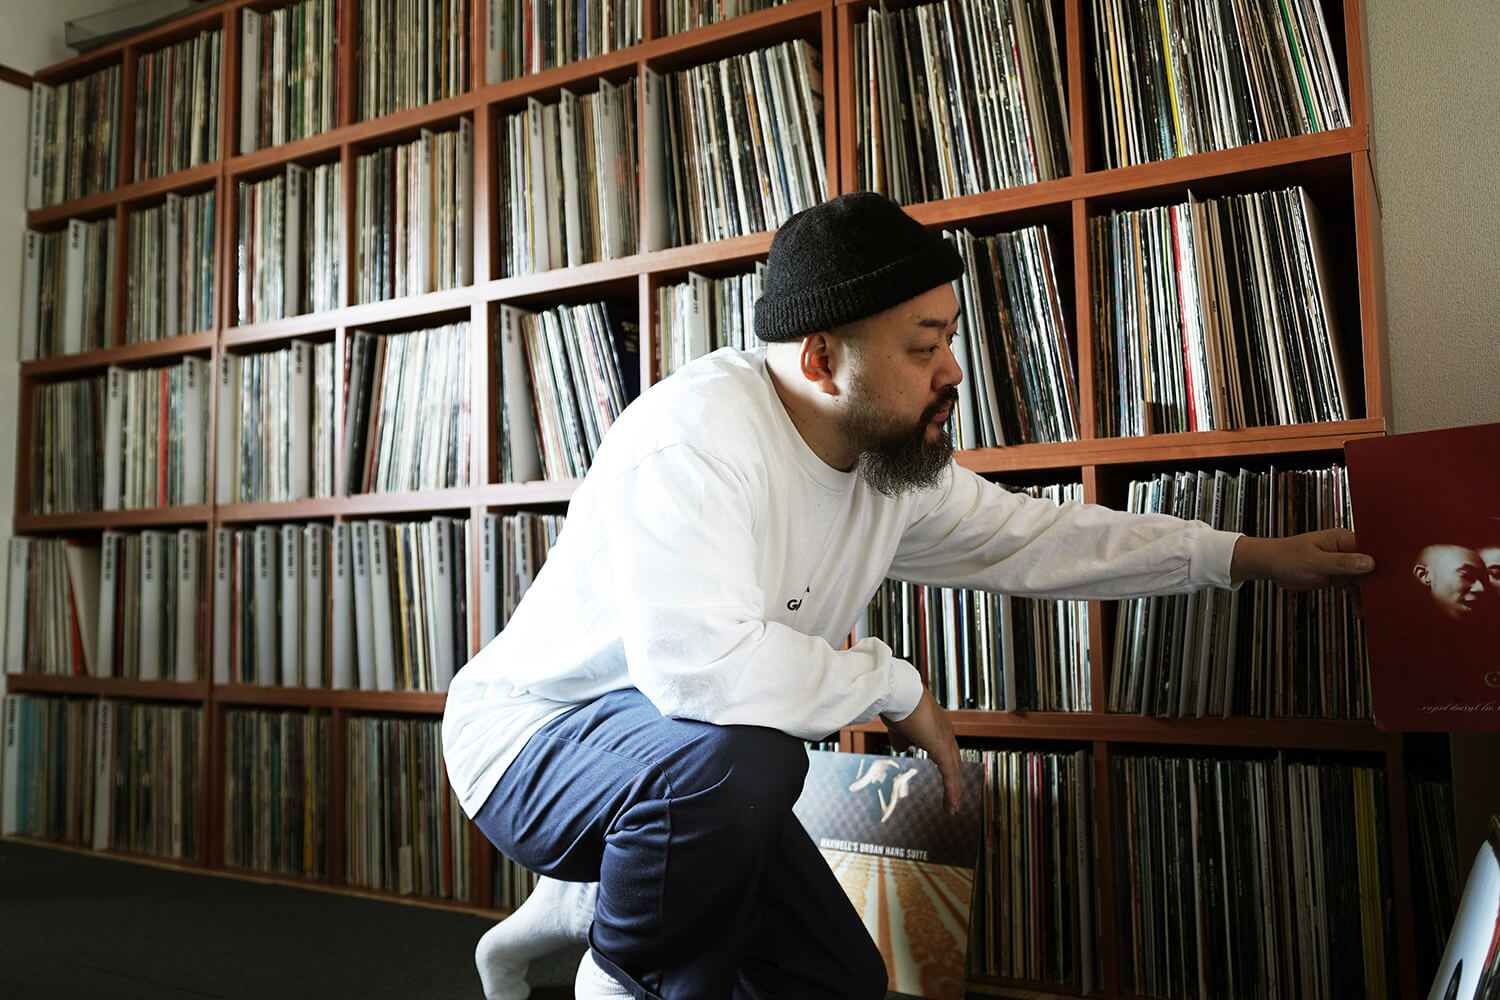 Talk About The Dope Sounds. #04 grooveman Spotの日日是好メロディ。